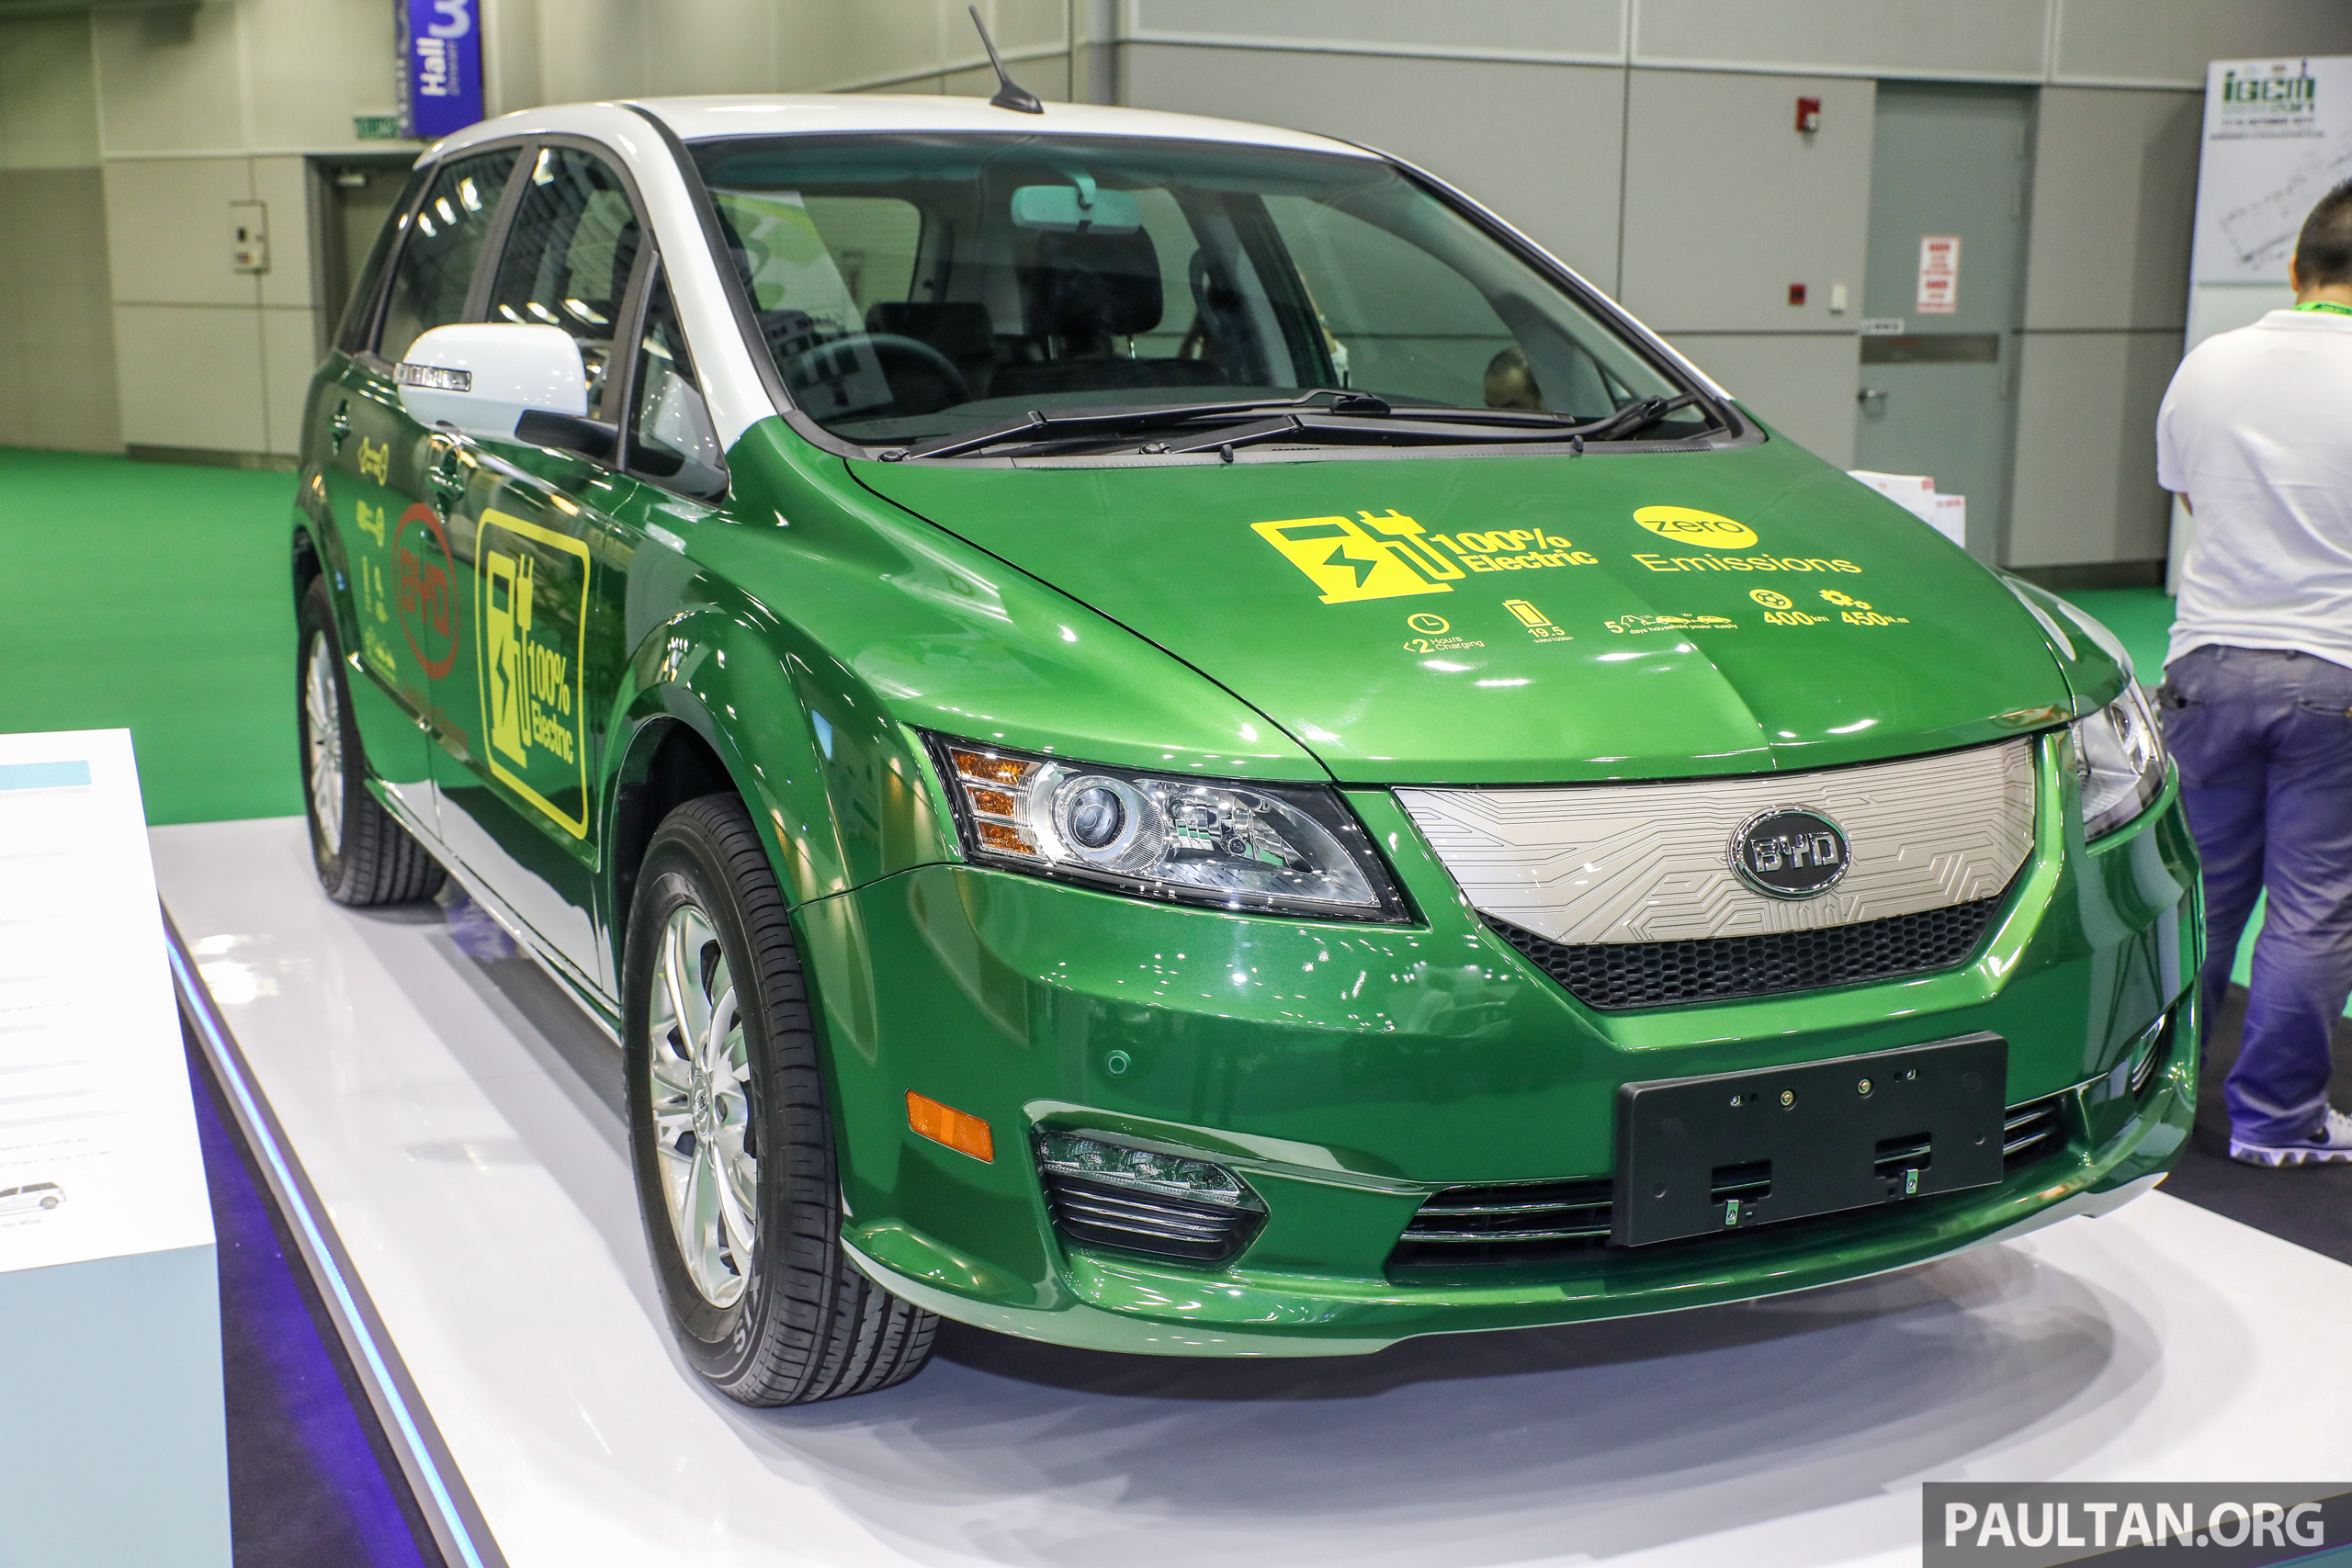 byd e6 electric vehicle shown at igem 2017 121 hp 450 nm 400 km range available for fleet. Black Bedroom Furniture Sets. Home Design Ideas